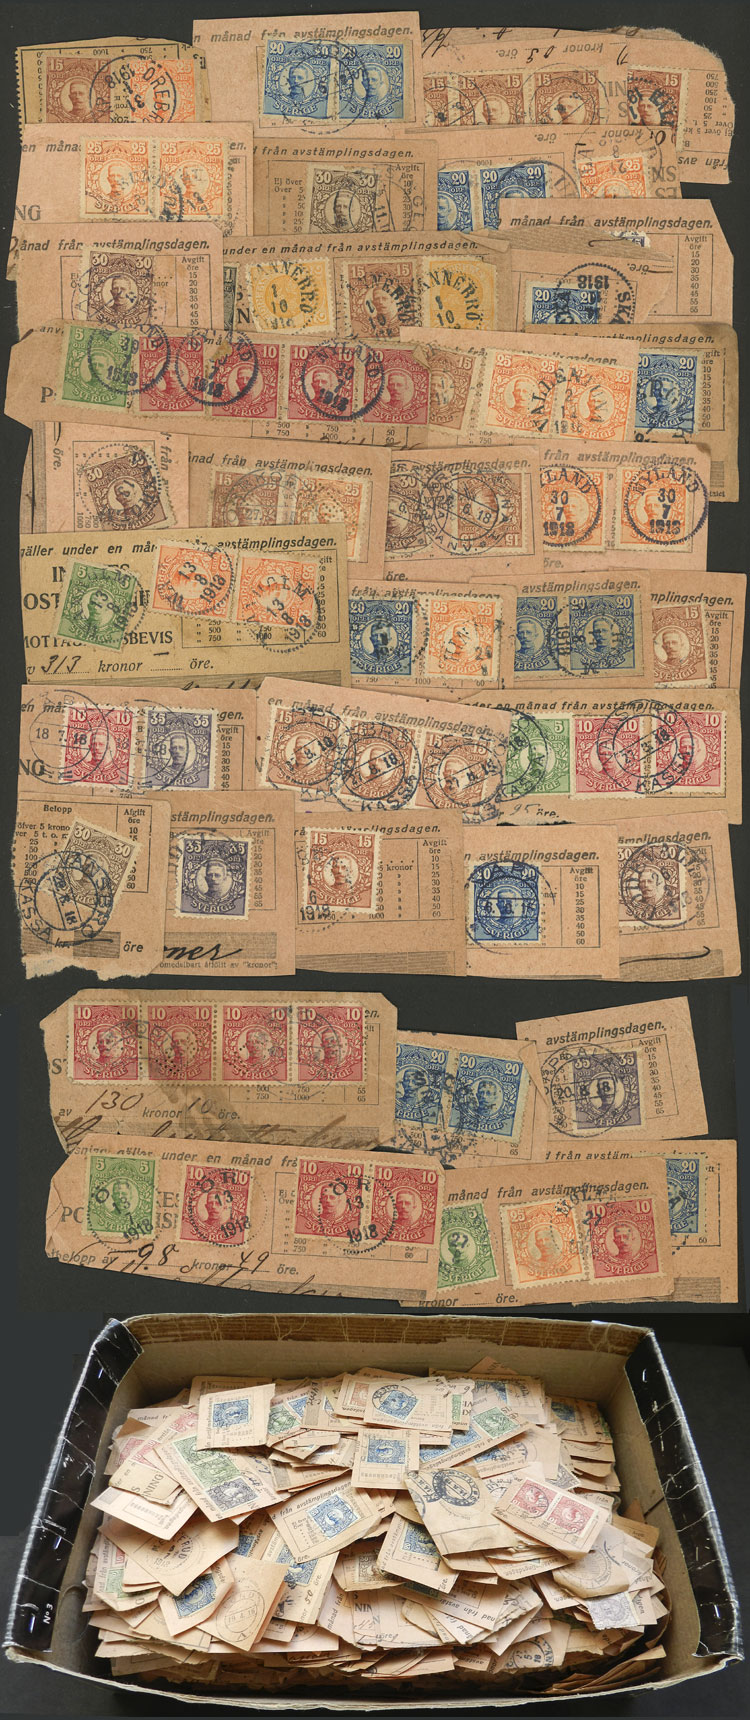 Lot 1268 - Sweden Lots and Collections -  Guillermo Jalil - Philatino Auction # 2039 WORLDWIDE + ARGENTINA: General September auction